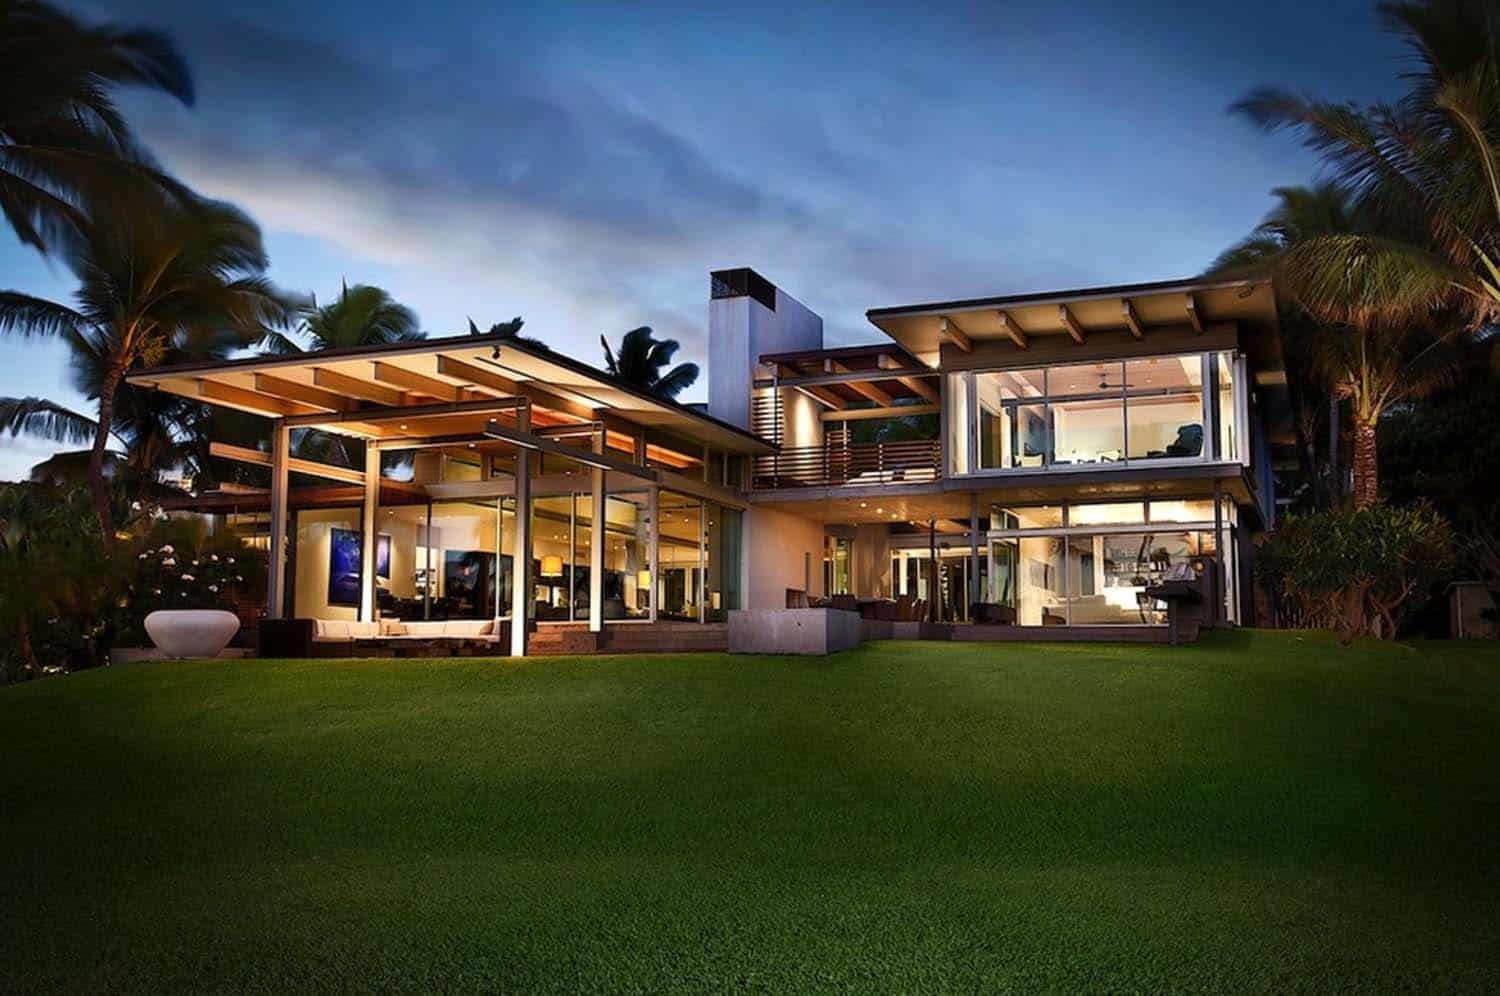 Tropical Maui Residence-Bossley Architects-24-1 Kindesign